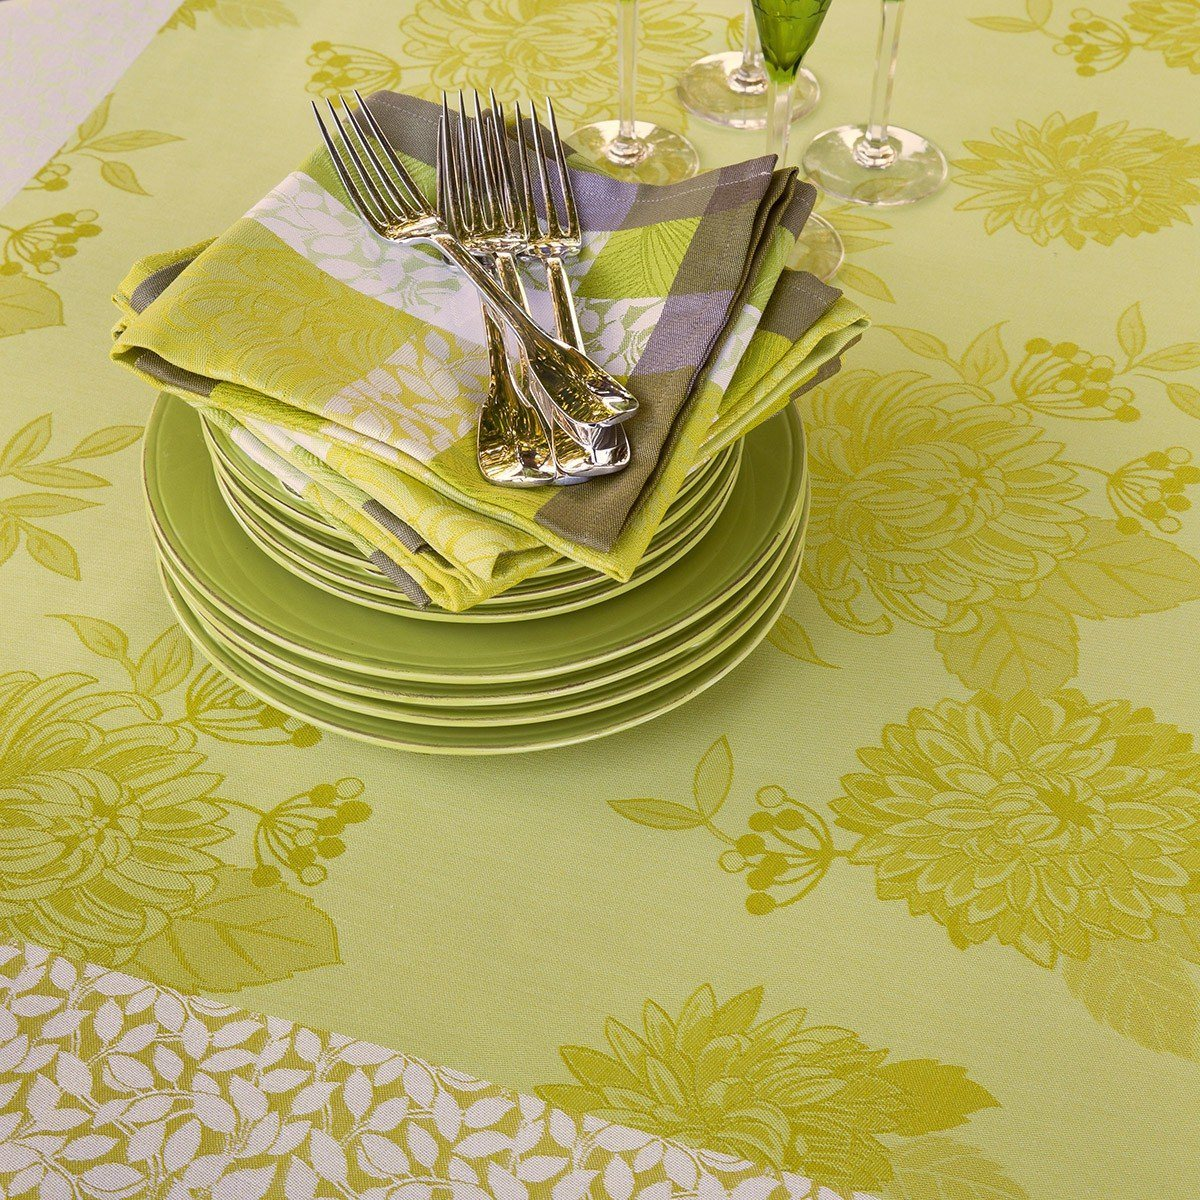 Le Jacquard Français Table Linen Parfums De Bagatelle Fig Linens Freesia Green Yellow tablecloth